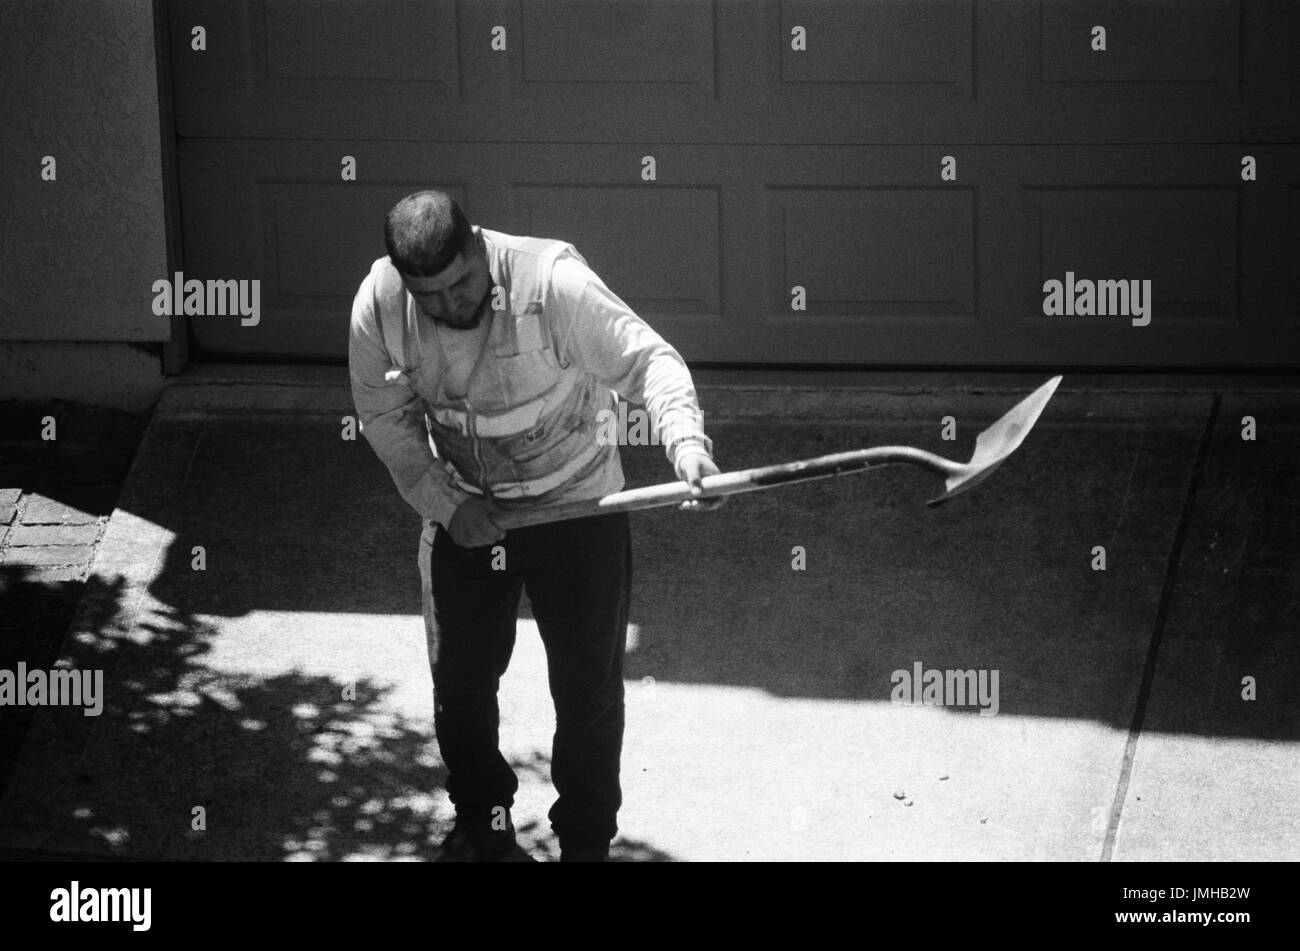 A construction worker bends in the hot sun as he prepares to lift a load of asphalt with a long shovel, San Ramon, California, June 26, 2017. - Stock Image